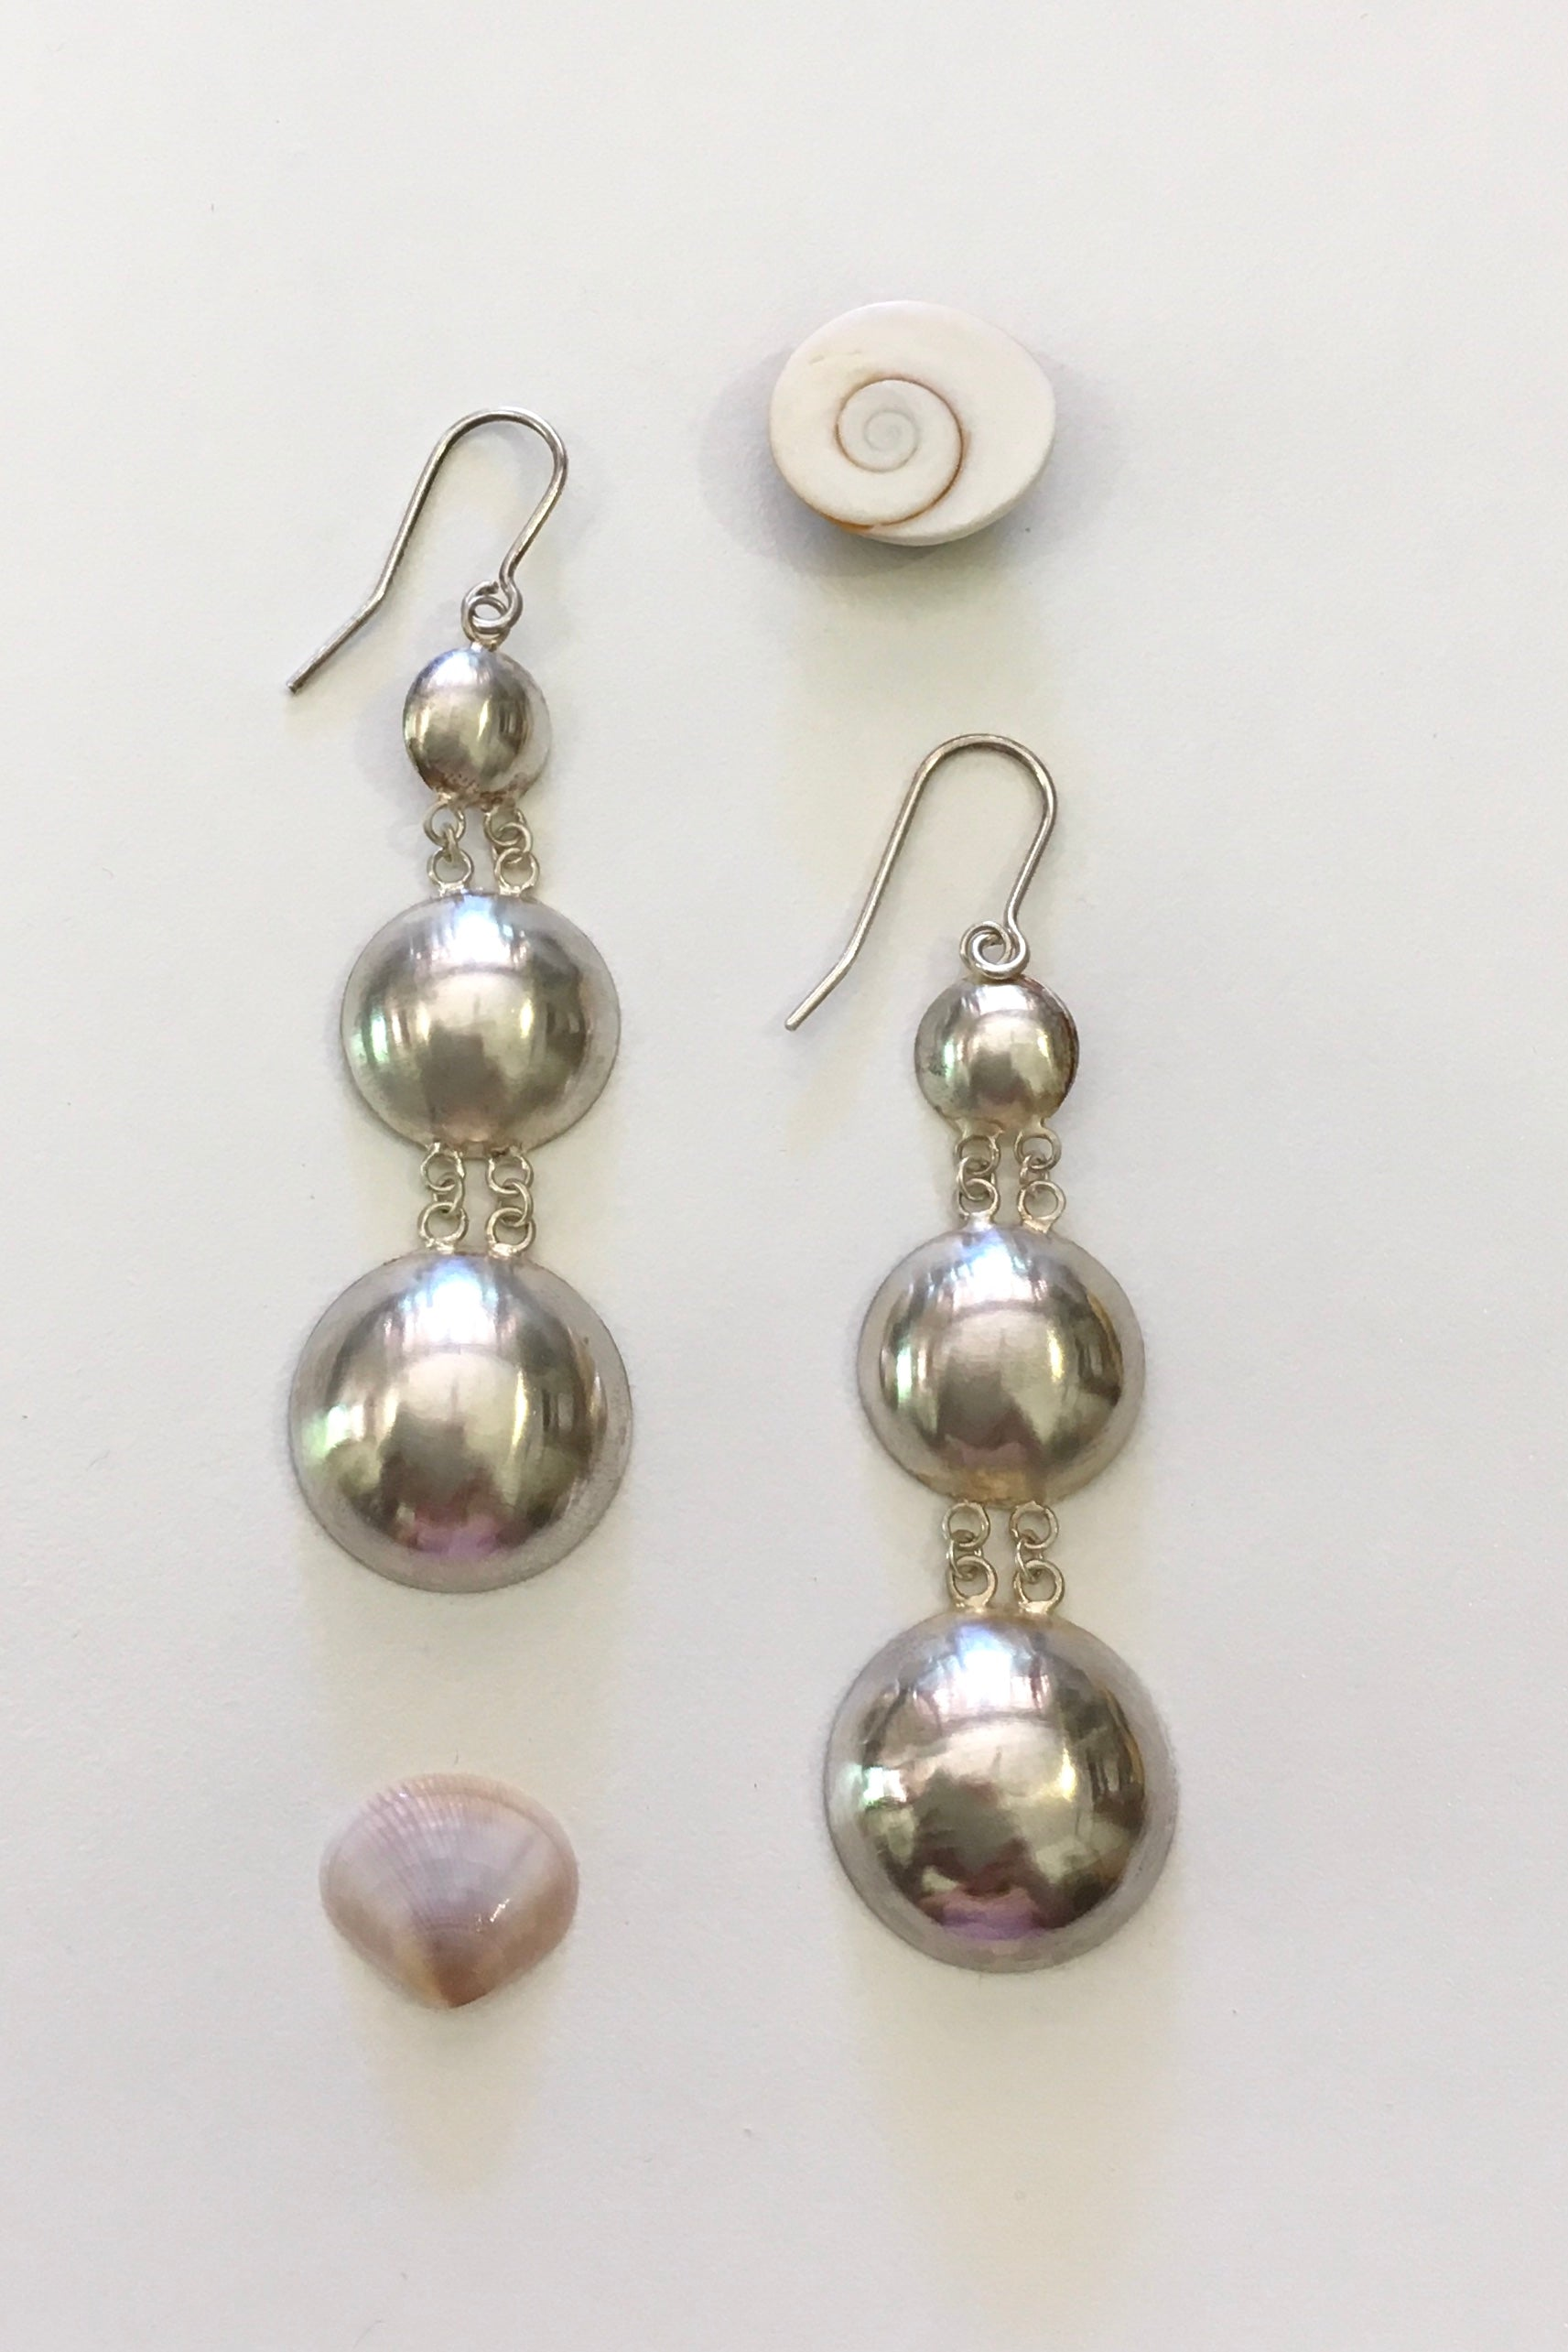 Silver Three Dome Earrings, 925 Silver Brushed Satin Finish Earrings